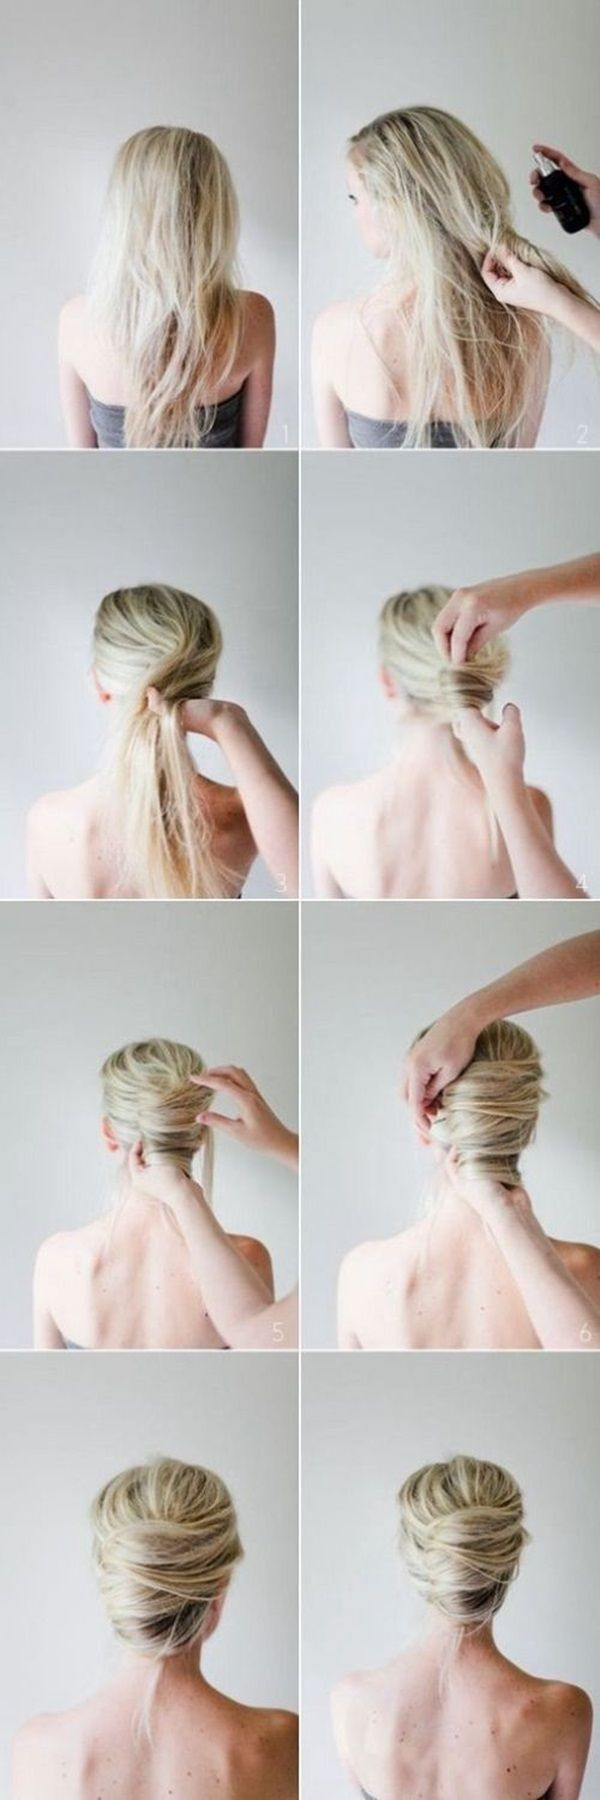 DIY Hairstyle Tutorials With Pictures (1)